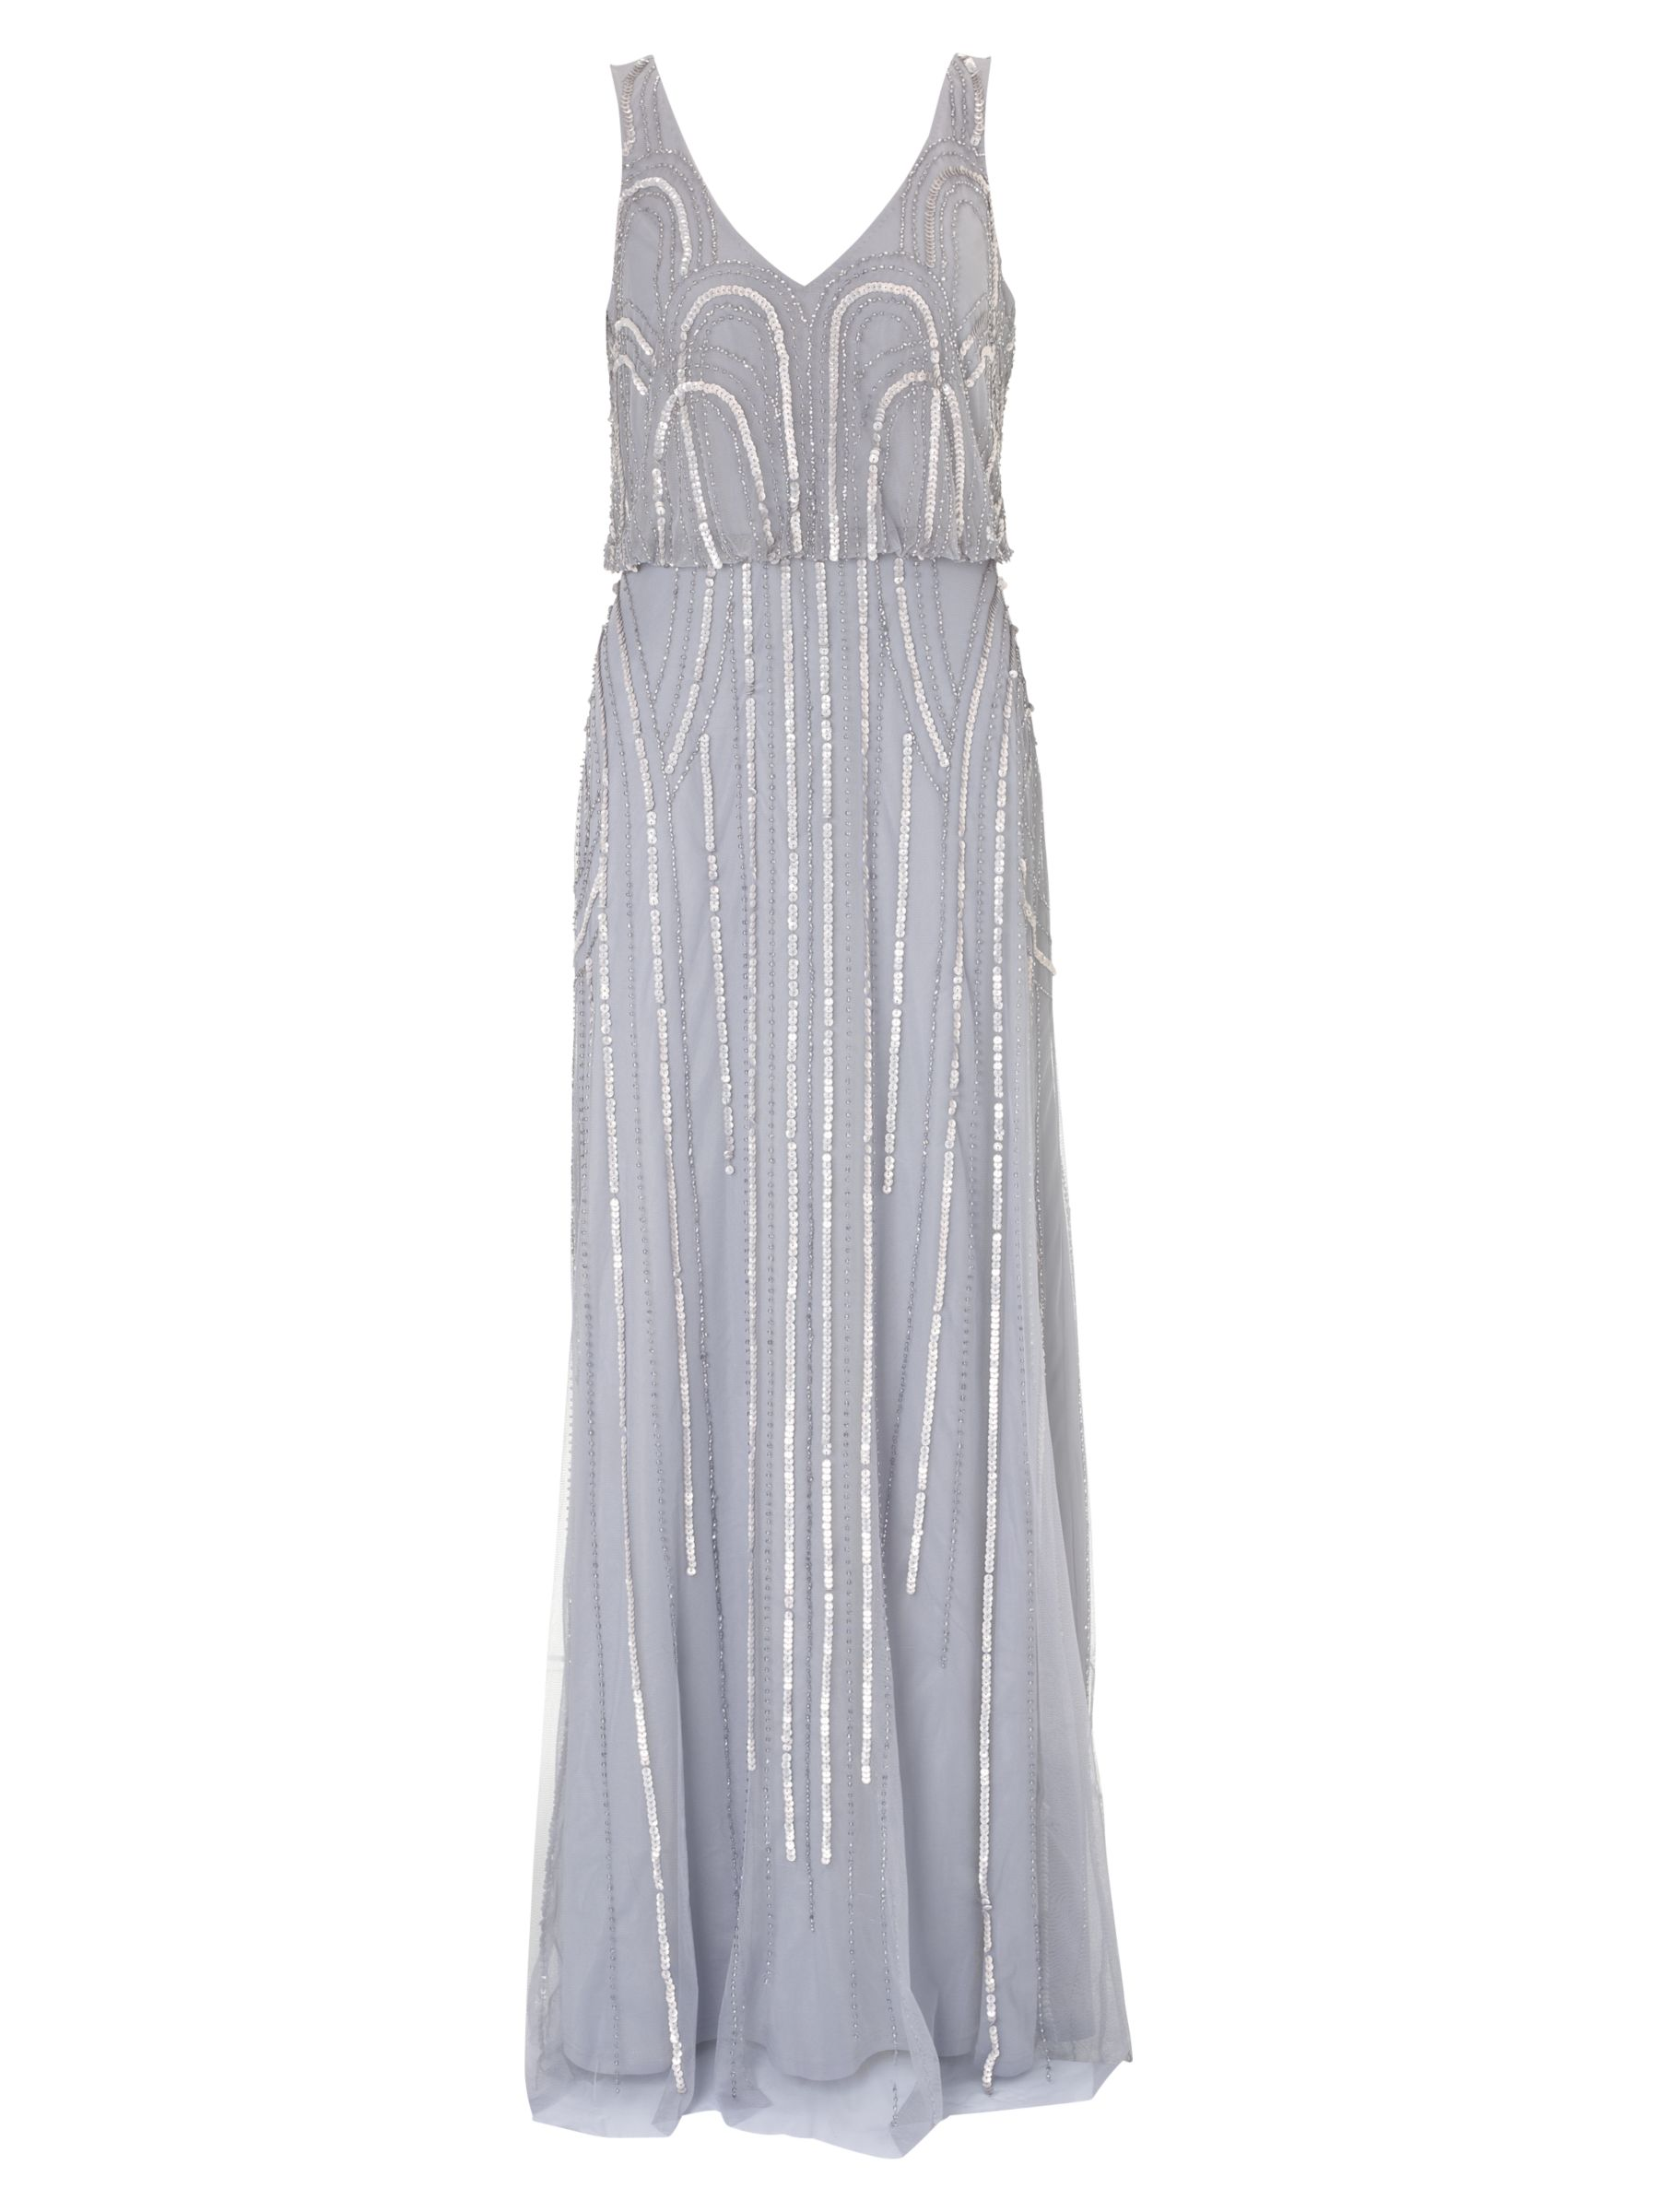 adrianna papell beaded art nouveau dress silver/grey, adrianna, papell, beaded, art, nouveau, dress, silver/grey, adrianna papell, 20|18|14|16|6|8|10|12, women, eveningwear, gifts, wedding, wedding clothing, wedding dresses, special offers, womenswear offers, 30% off selected adrianna papell, brands a-k, womens dresses, adult bridesmaids, 1875424